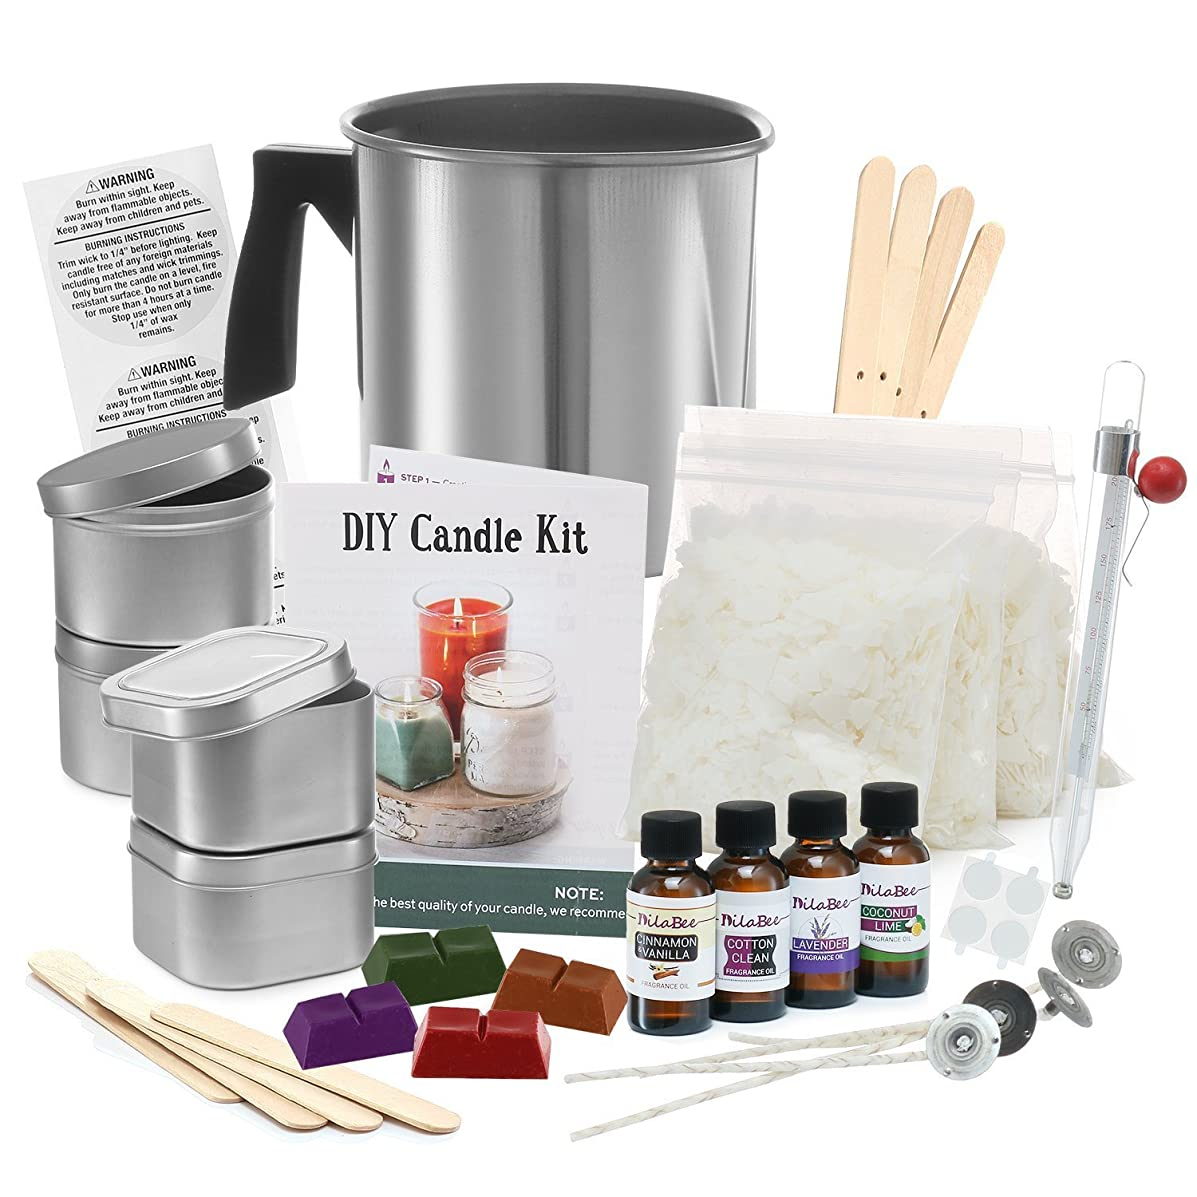 Complete DIY Candle Making Kit Supplies – Create Large Scented Soy Candles – Full Beginners Set Including 2 LB Wax, Rich Scents, Dyes, Wicks, Melting Pitcher, Tins & More